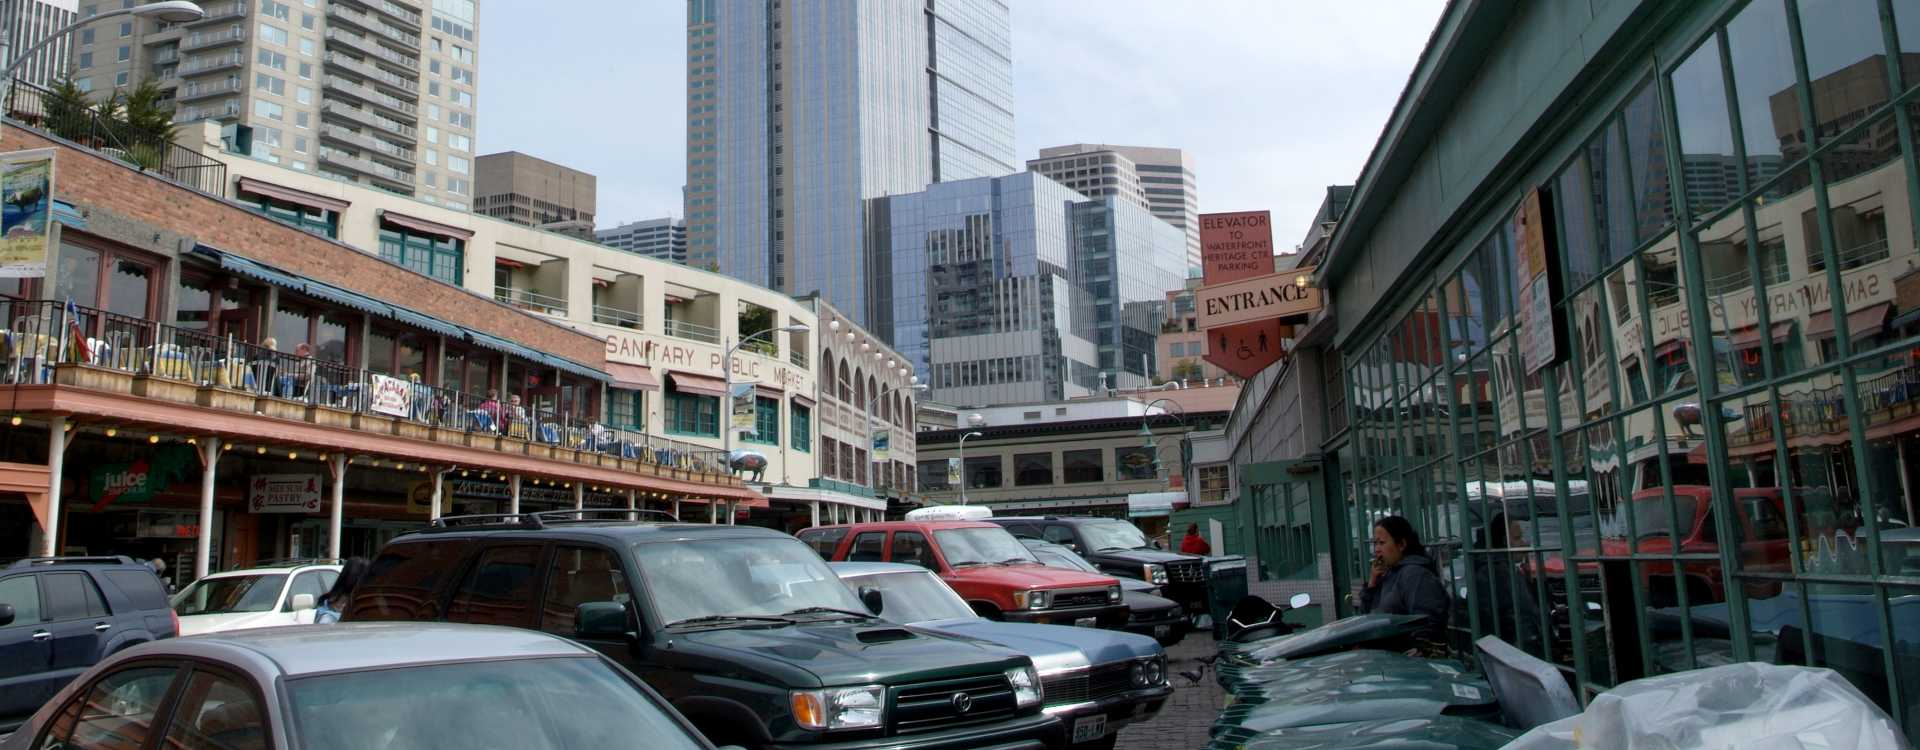 Pike_Place_Market-2.jpg